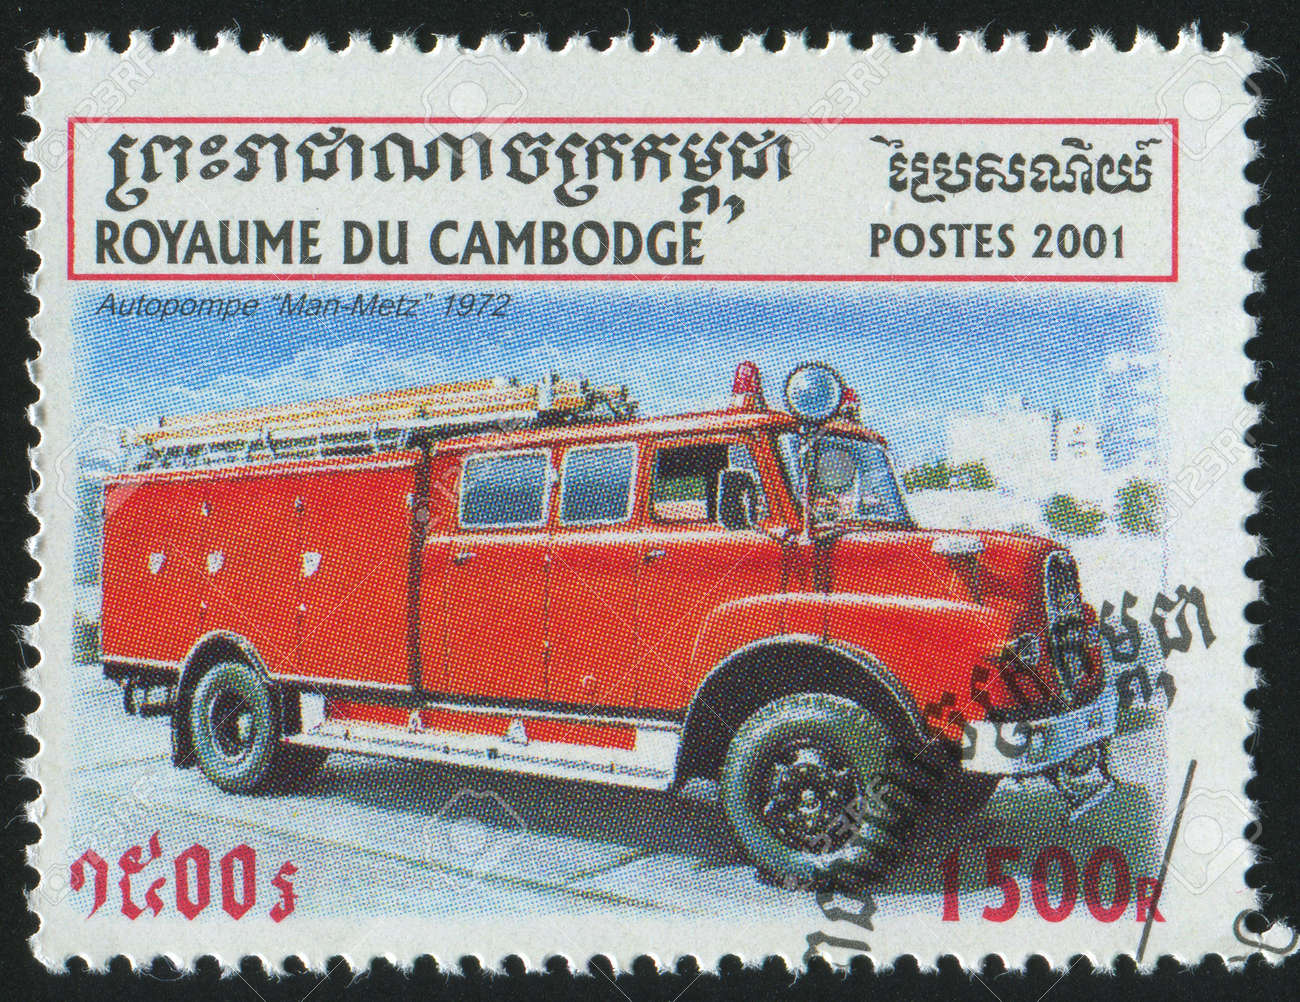 CAMBODIA - CIRCA 2001: stamp printed by Cambodia, shows retro car, circa 2001. Stock Photo - 7257362